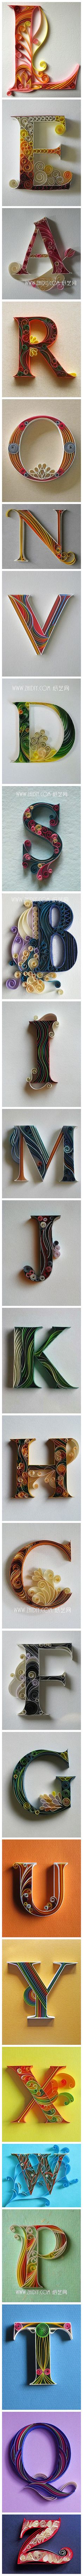 Quilling paper perhaps? DIY origami the derivative paper derivative paper letters appreciate Diy Projects To Try, Crafts To Do, Craft Projects, Arts And Crafts, Craft Ideas, Diy Paper, Paper Art, Paper Crafts, Recycle Paper